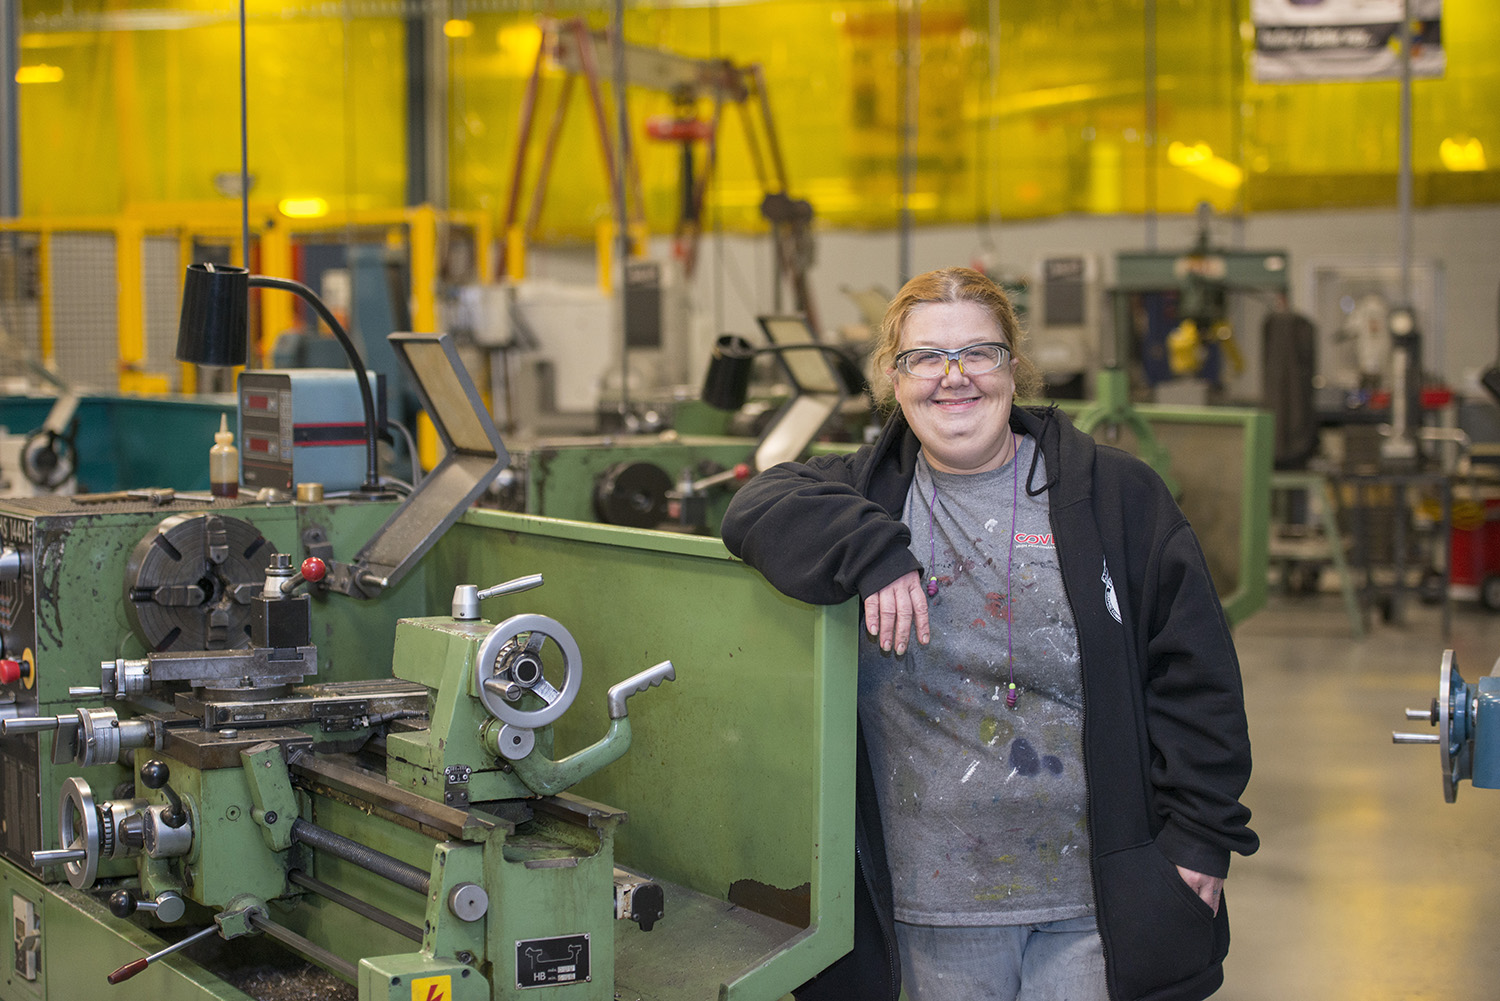 KCC student Karen Kelley poses for a photo at the Regional Manufacturing Technology Center campus in Battle Creek.